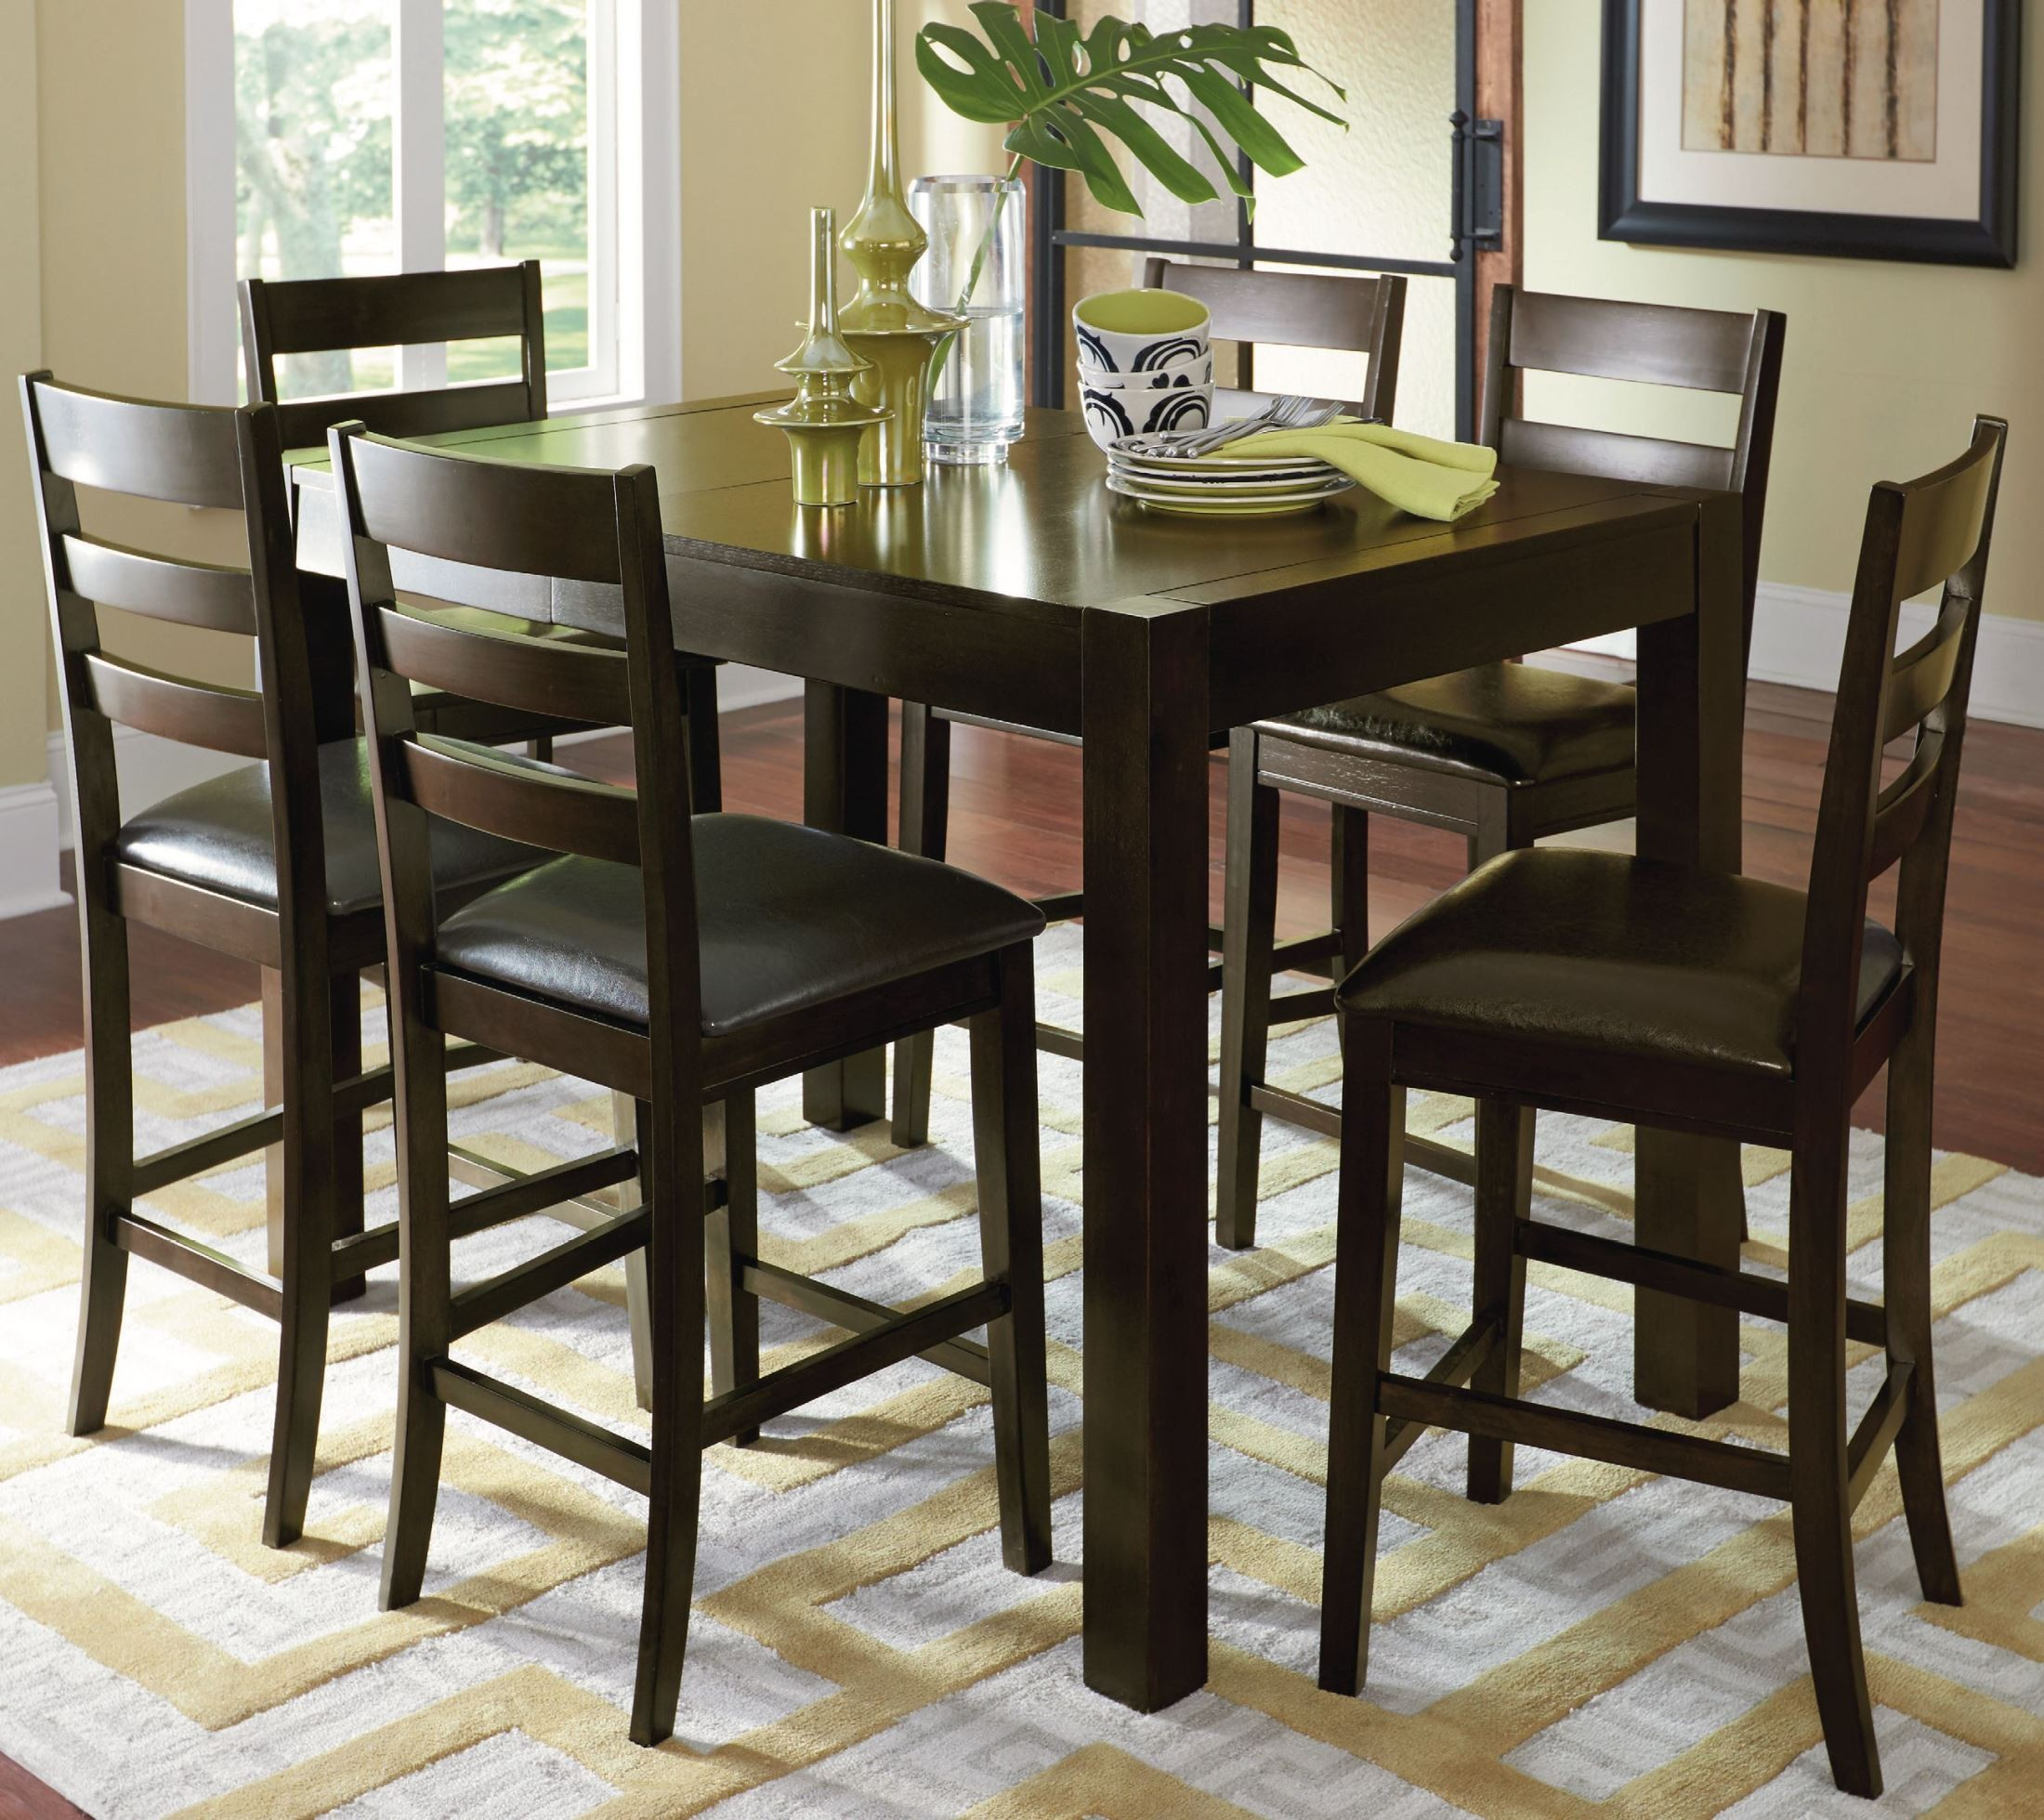 Dining Room Set For 12: Amini Espresso Butterfly Counter Height Dining Room Set